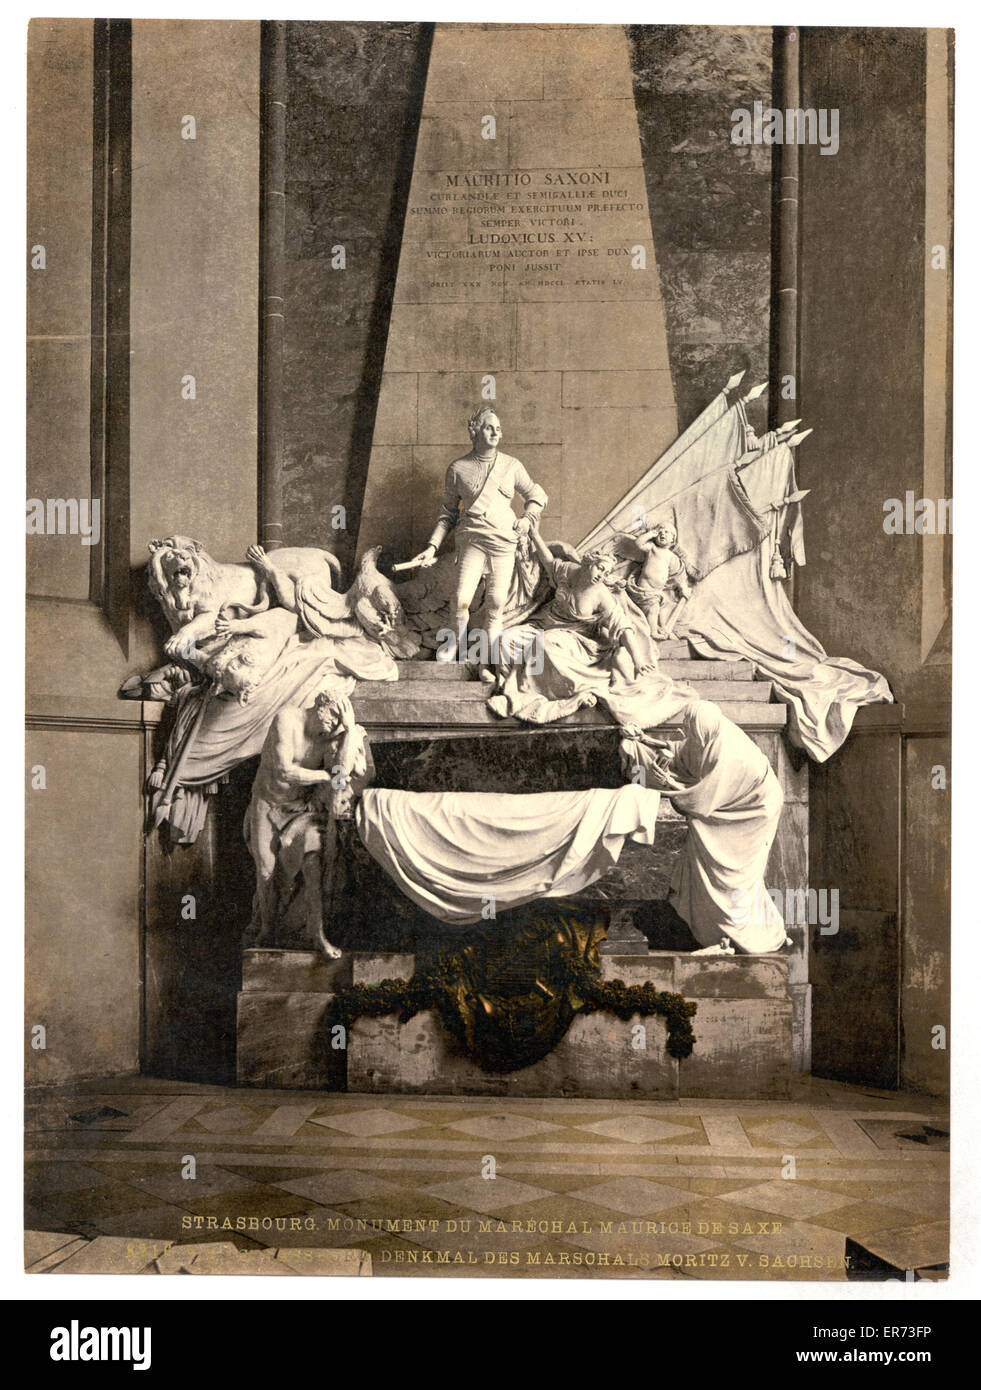 Monument to Marshall Mauritz of Saxe, Strassburg, Alsace Lorraine, Germany. Date between ca. 1890 and ca. 1900. - Stock Image